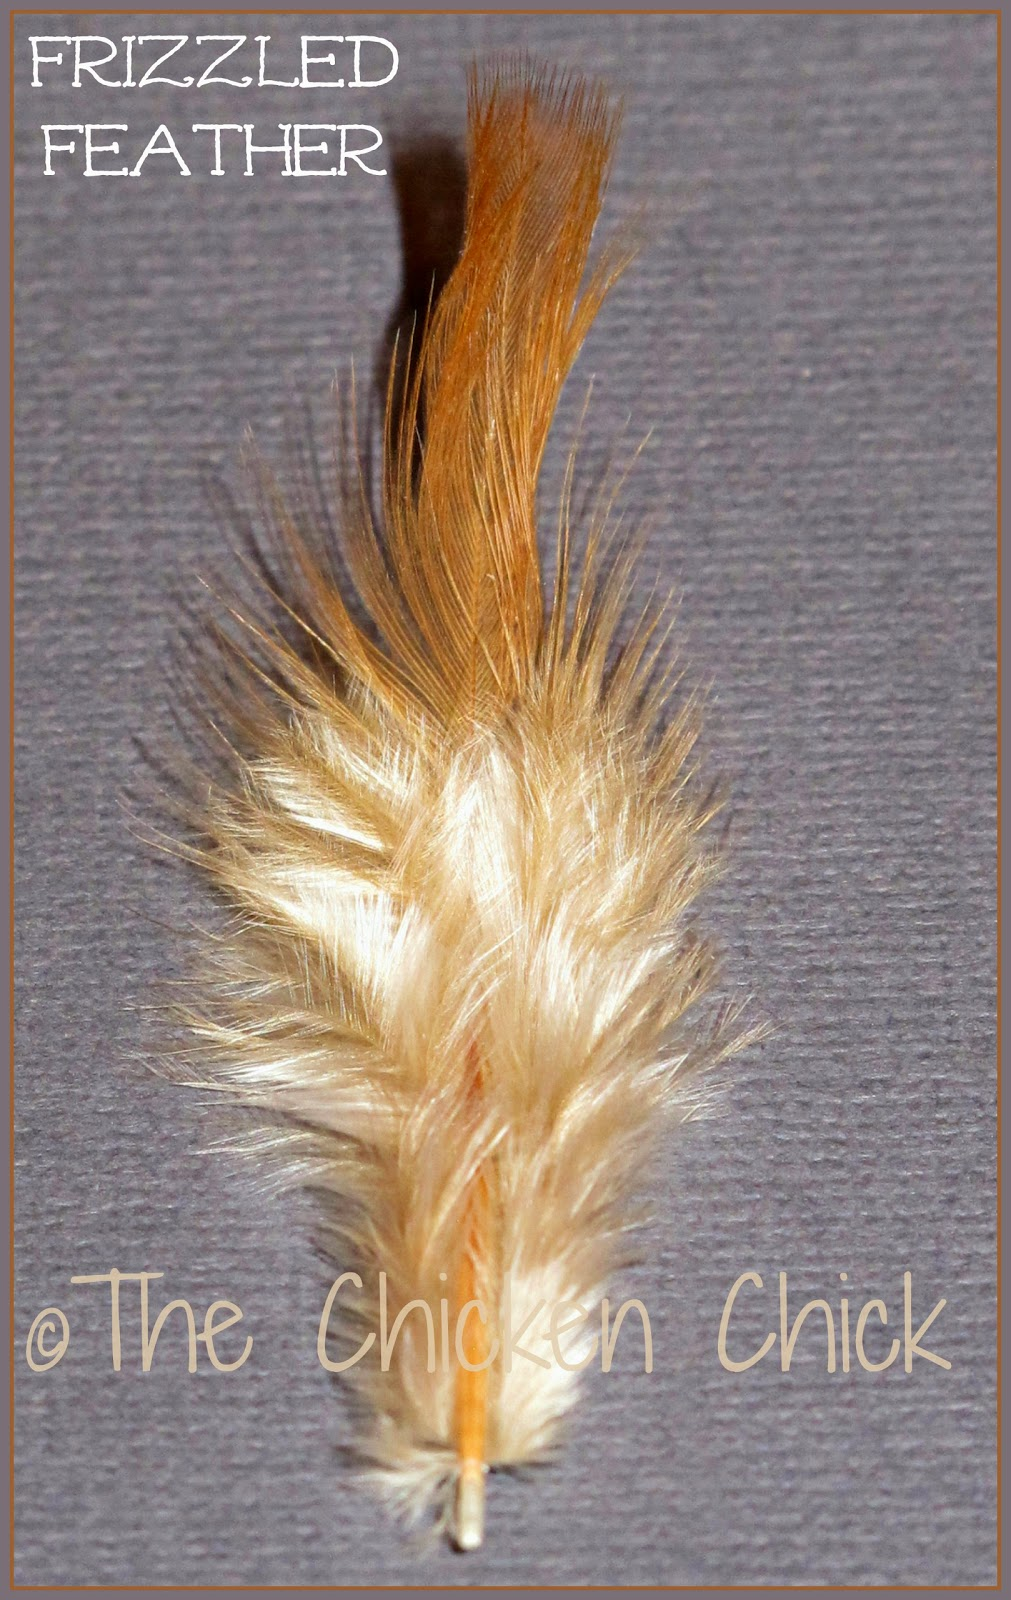 Cochin is her breed, bantam describes her miniature size and frizzle describes her unusual feathers. Genetics cause frizzled feathers to grow out and curl away from the body instead of  growing flat and smooth following the body contour. Frizzle is not a breed, it is a genetically programmed feather type.